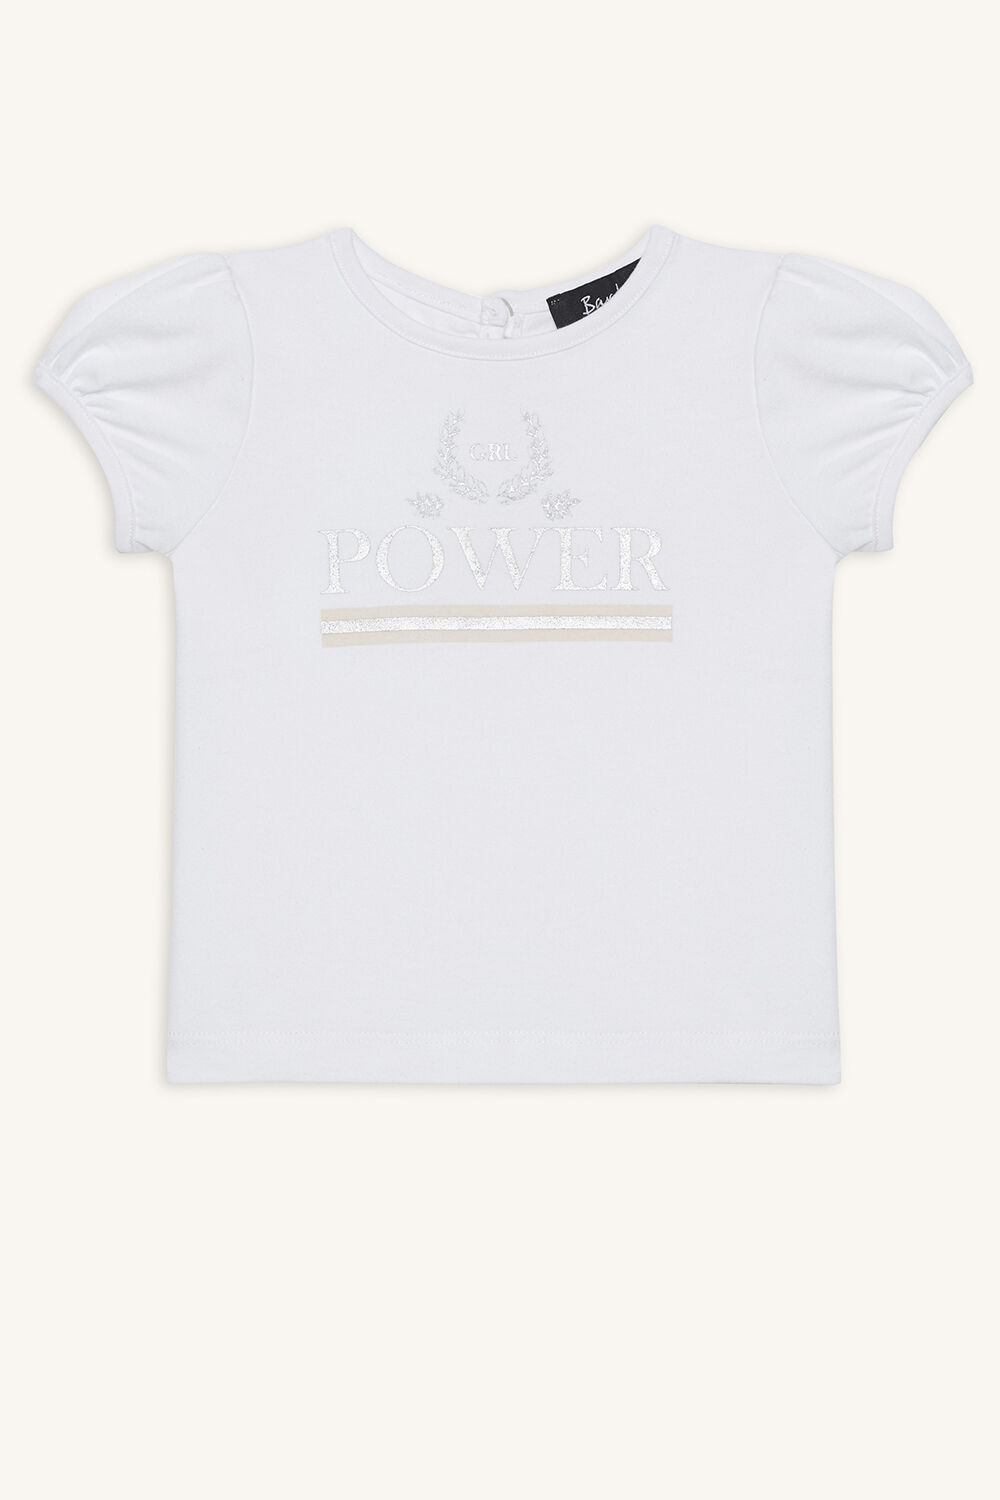 GIRL POWER TEE in colour BRIGHT WHITE